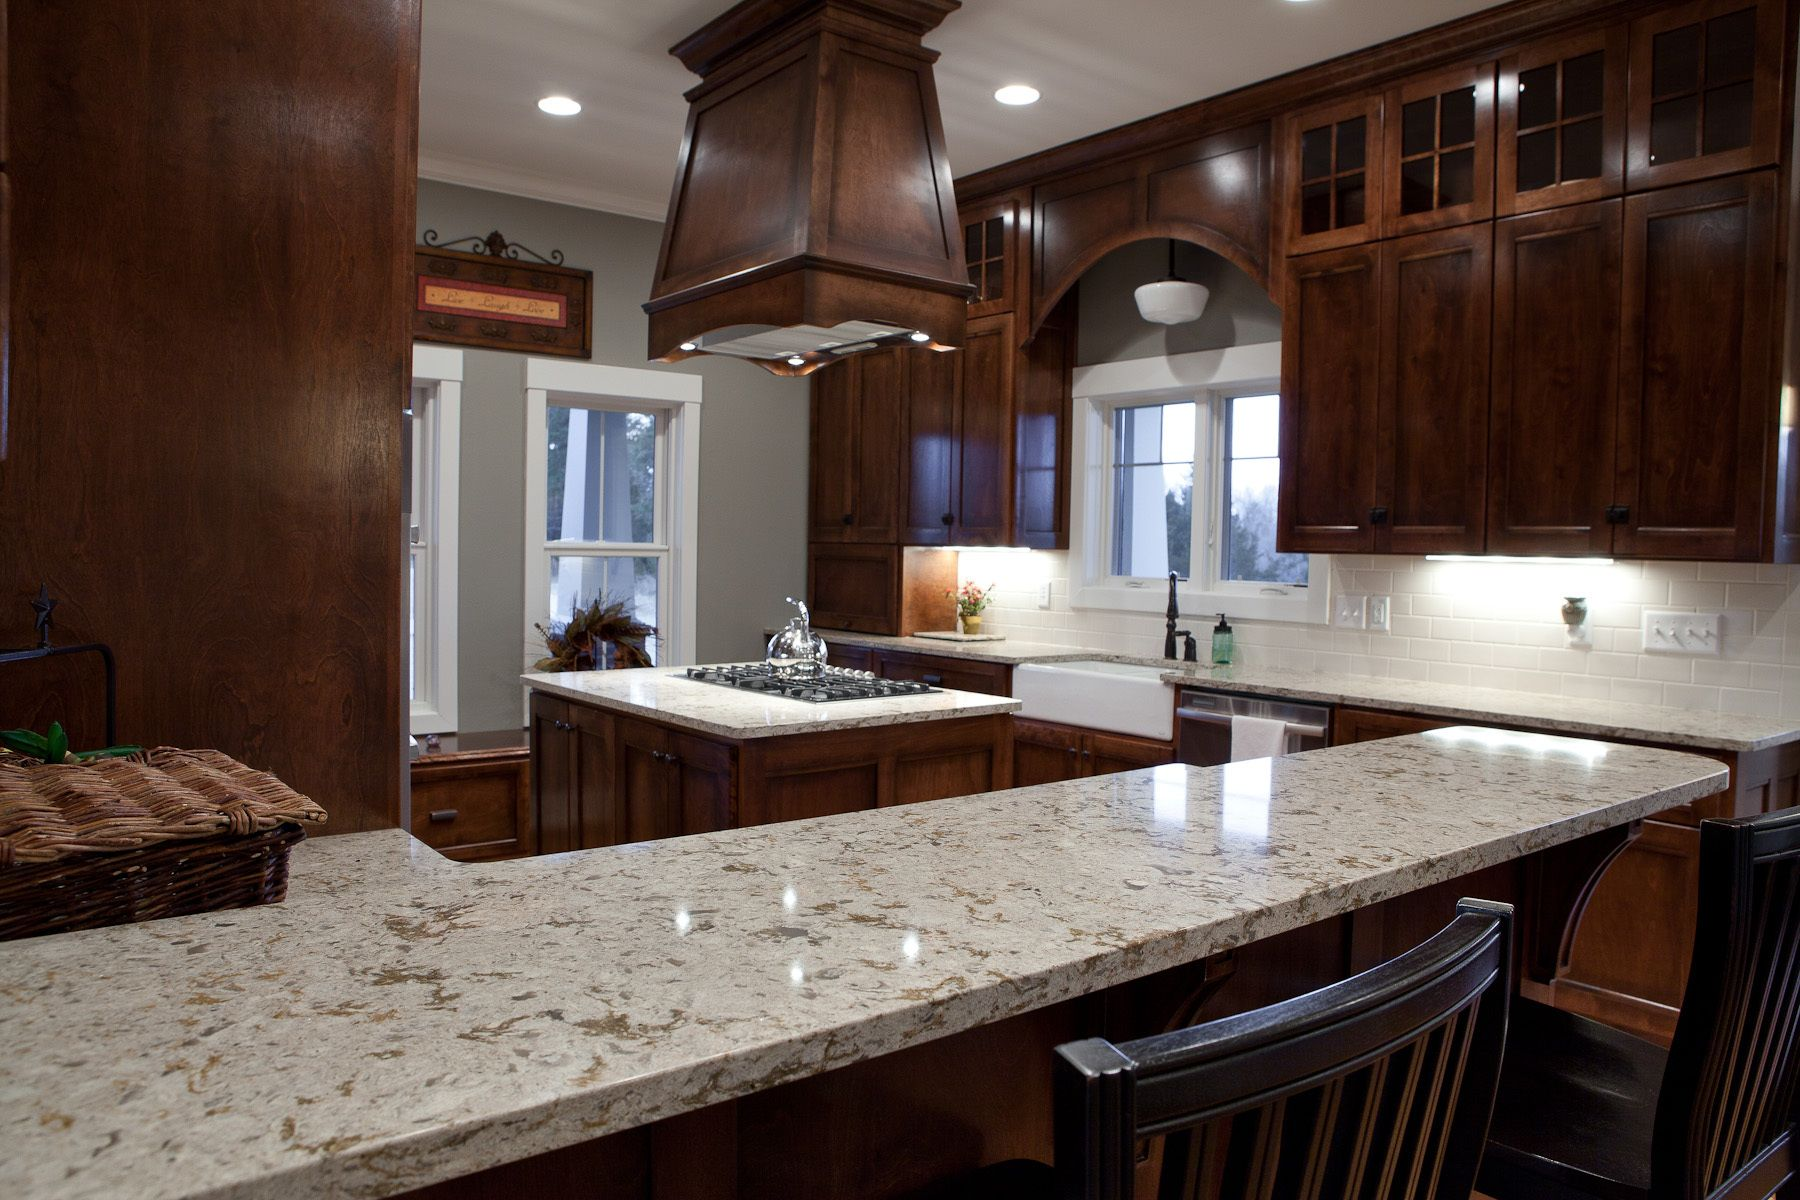 Black Countertop Stove : black kitchens marble kitchen countertops white quartz countertops ...